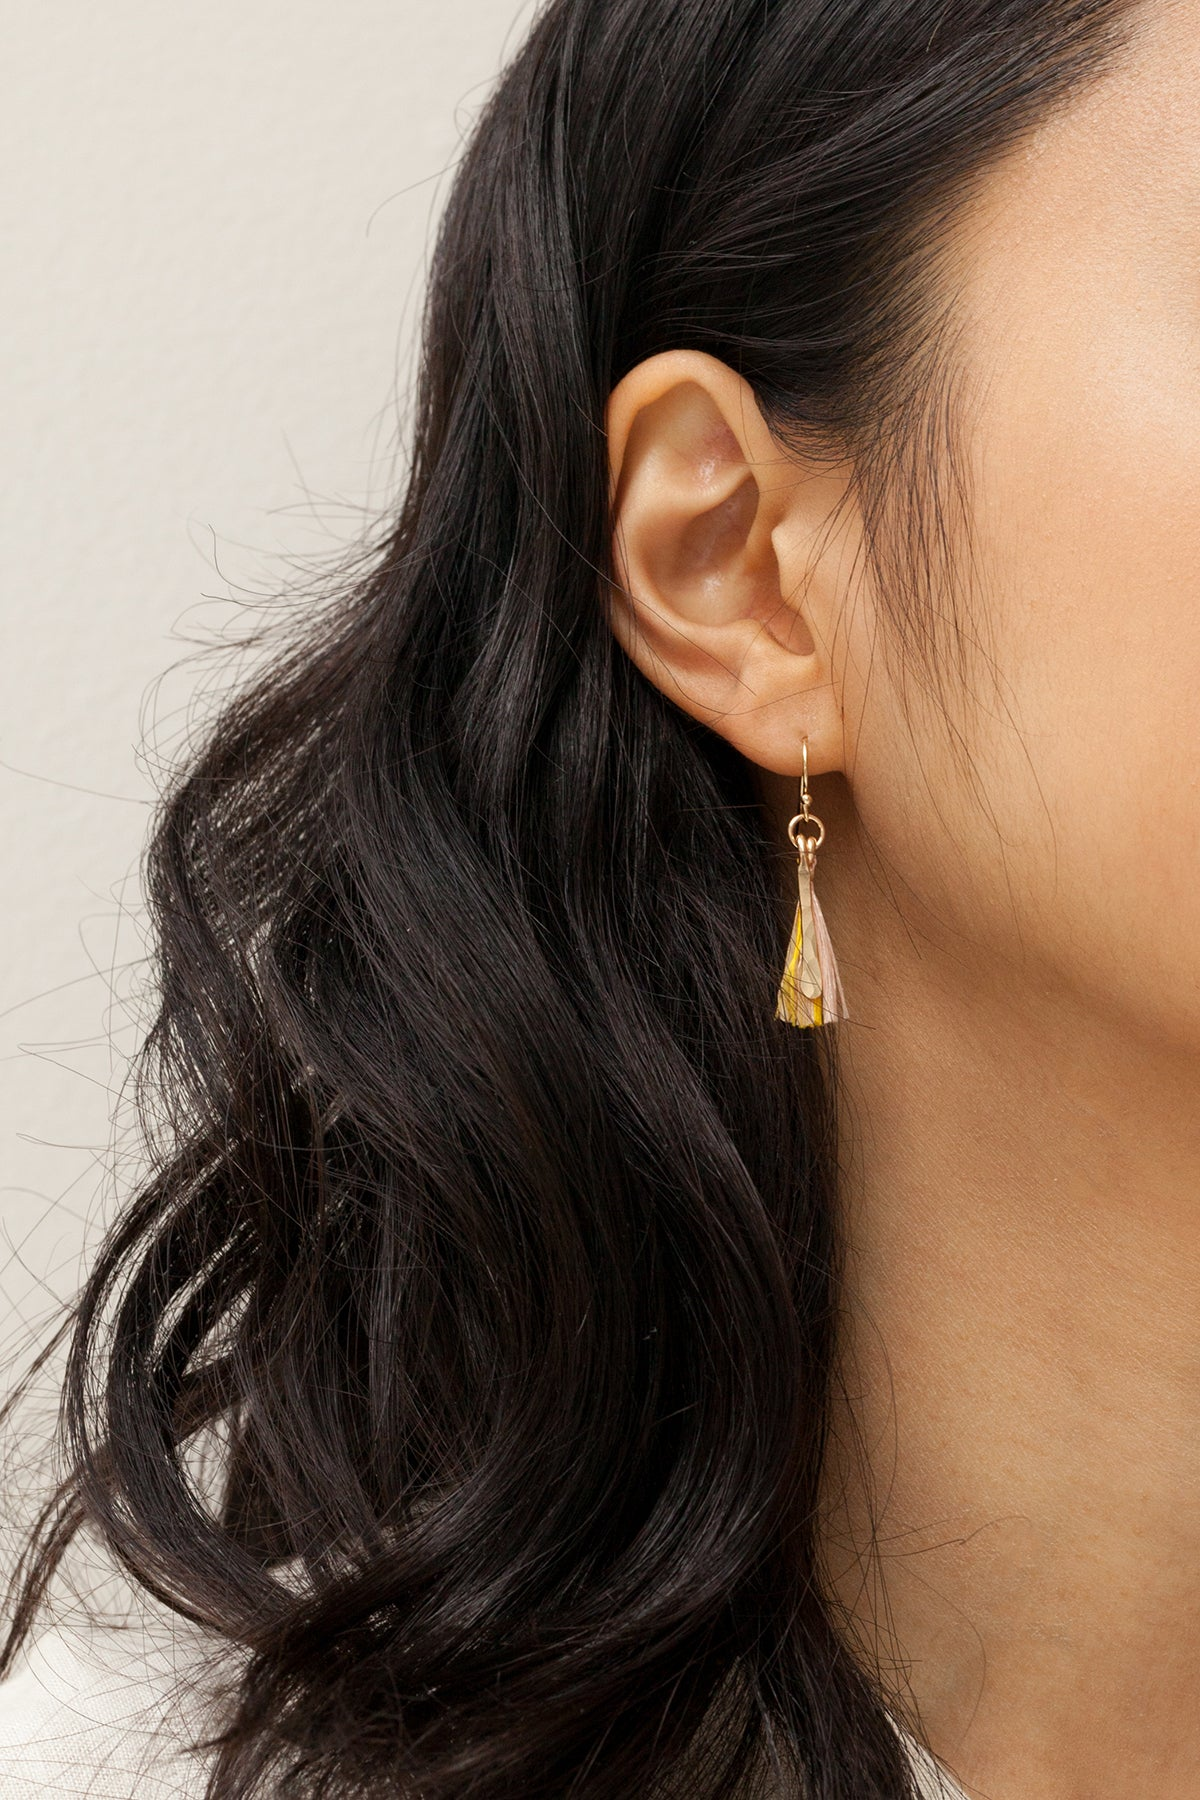 No 3 – Coronado Earrings